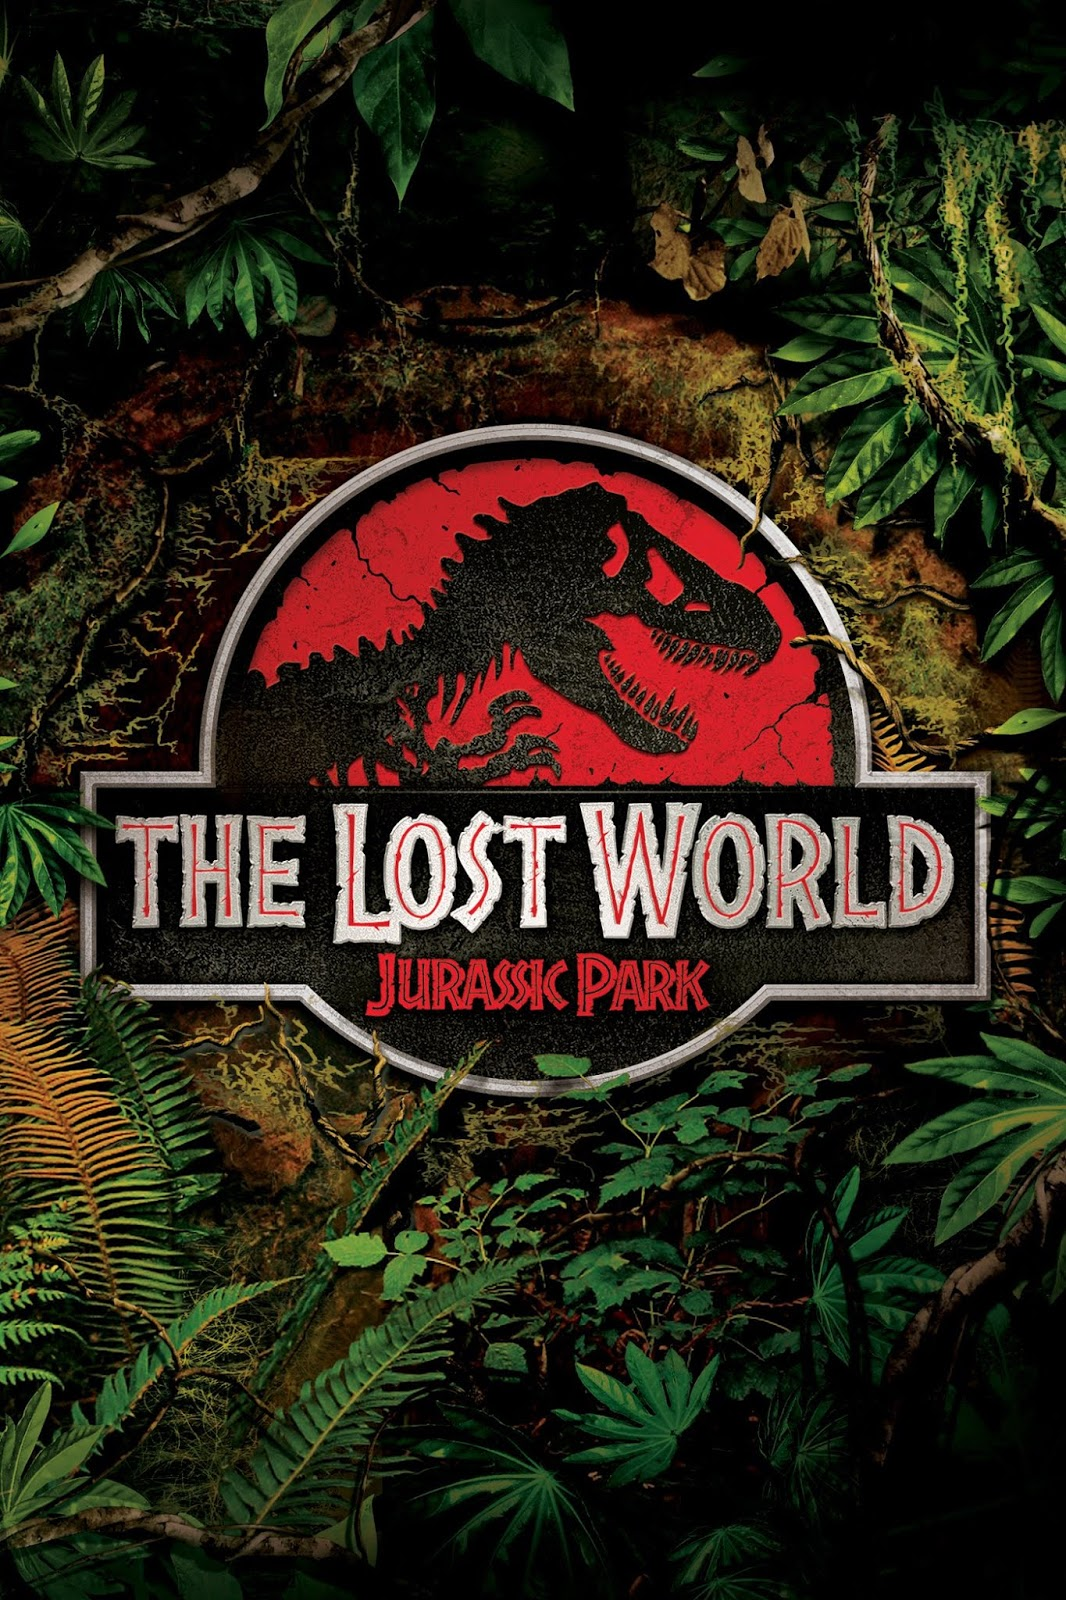 THE LOST WORLD JURASSIC PARK 2 (1997) TAMIL DUBBED HD